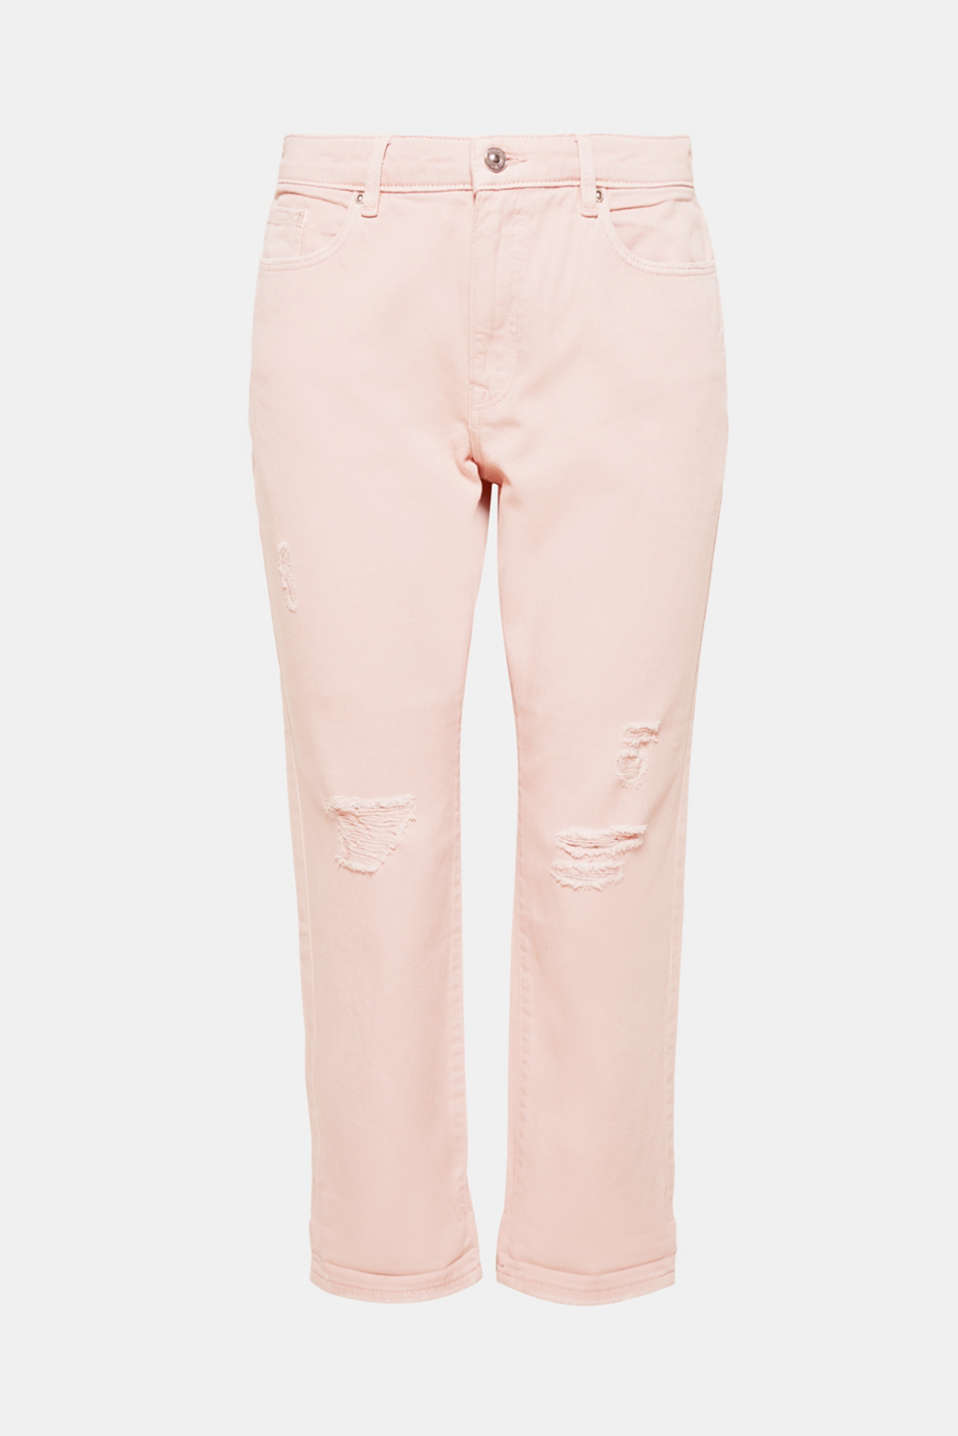 Cool distressed effects and a delicate pastel tone give these girlfriend jeans their trendy summer look.